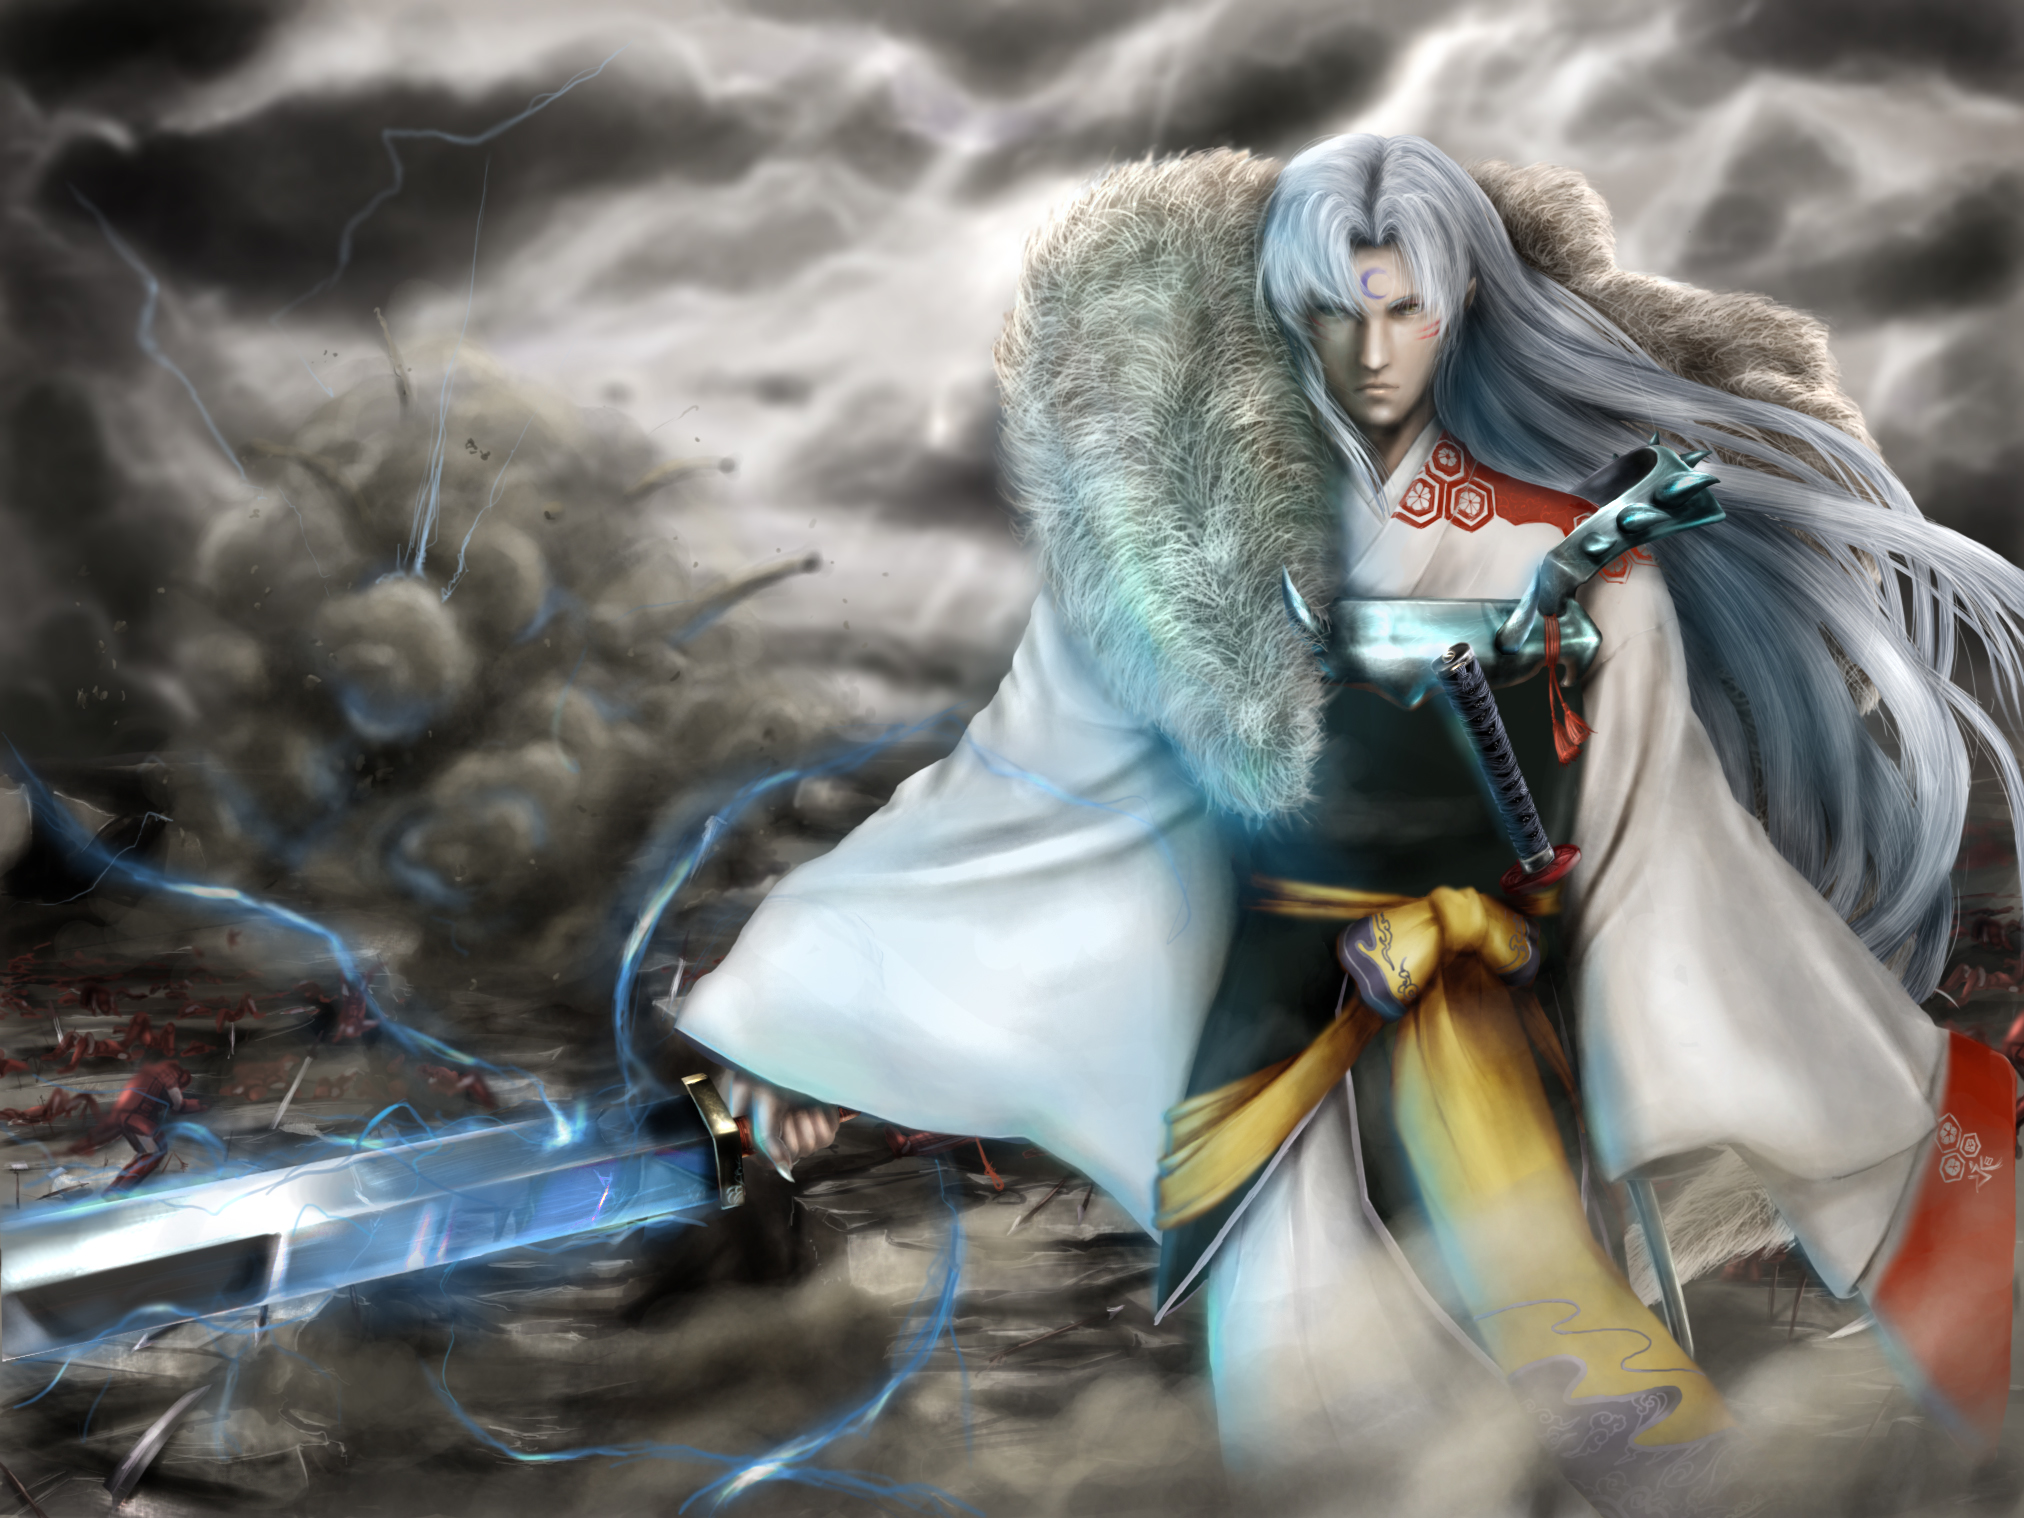 Sesshomaru-anime-and-vampire-lovers-28554088-2024-1518